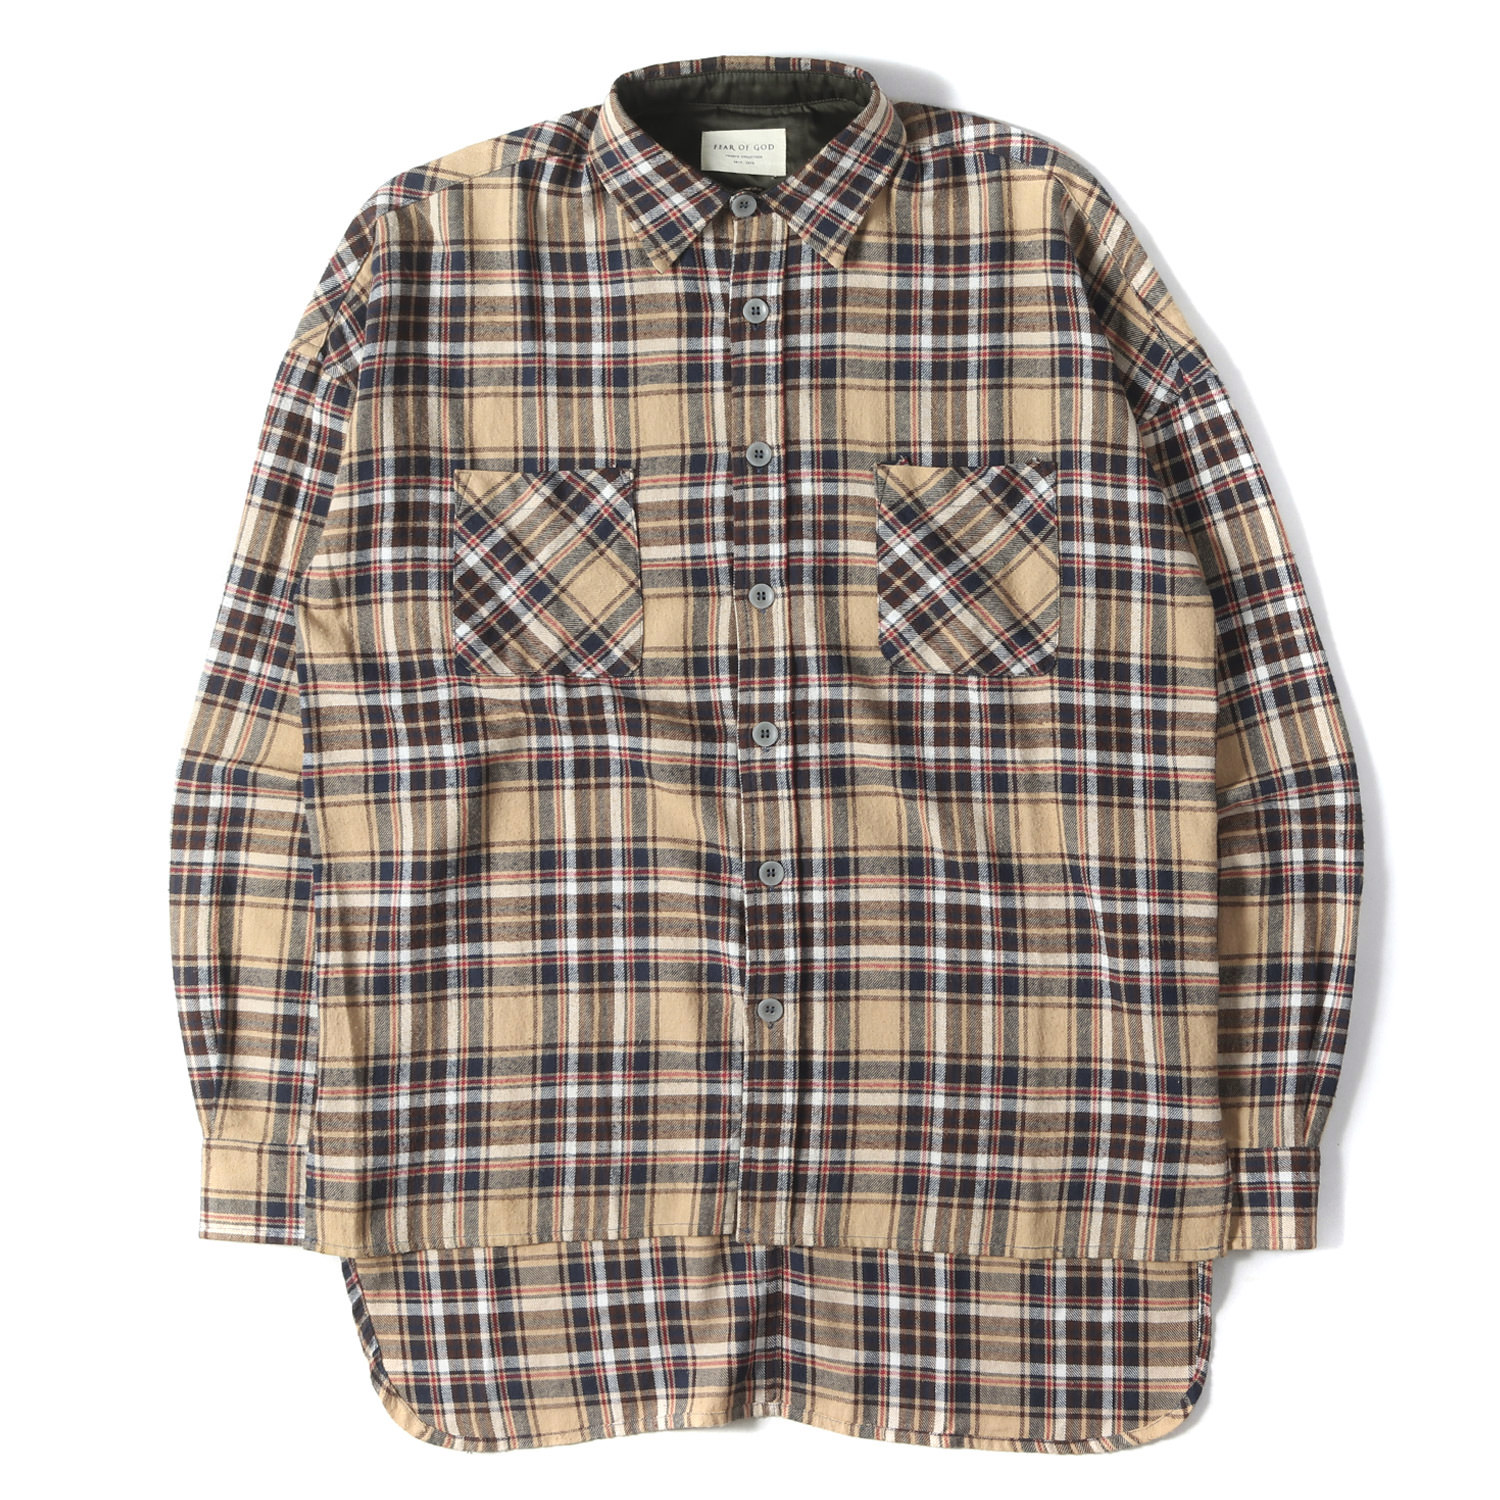 16AW ビッグサイズチェックフランネルシャツ(FOURTH COLLECTION / FLANNEL SHIRTS)